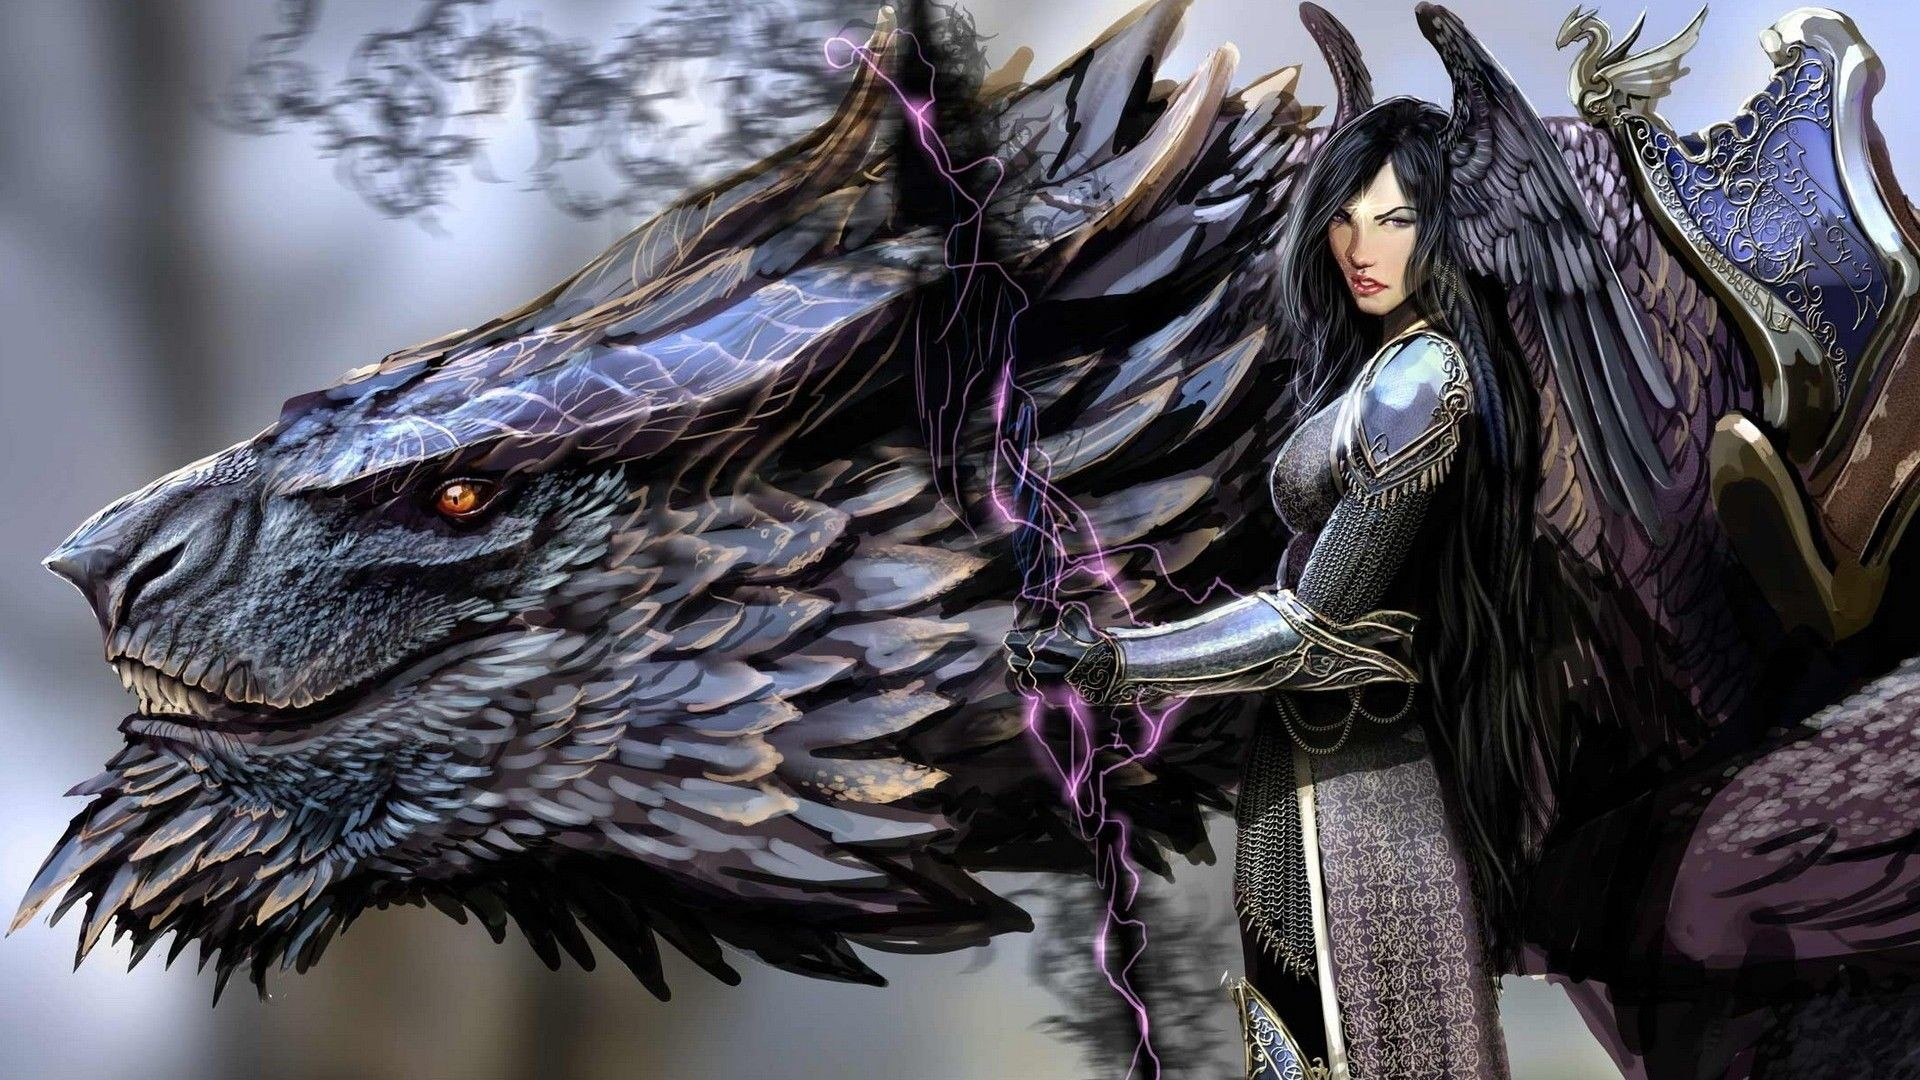 Hd Dragon Wallpapers Posted By Christopher Peltier